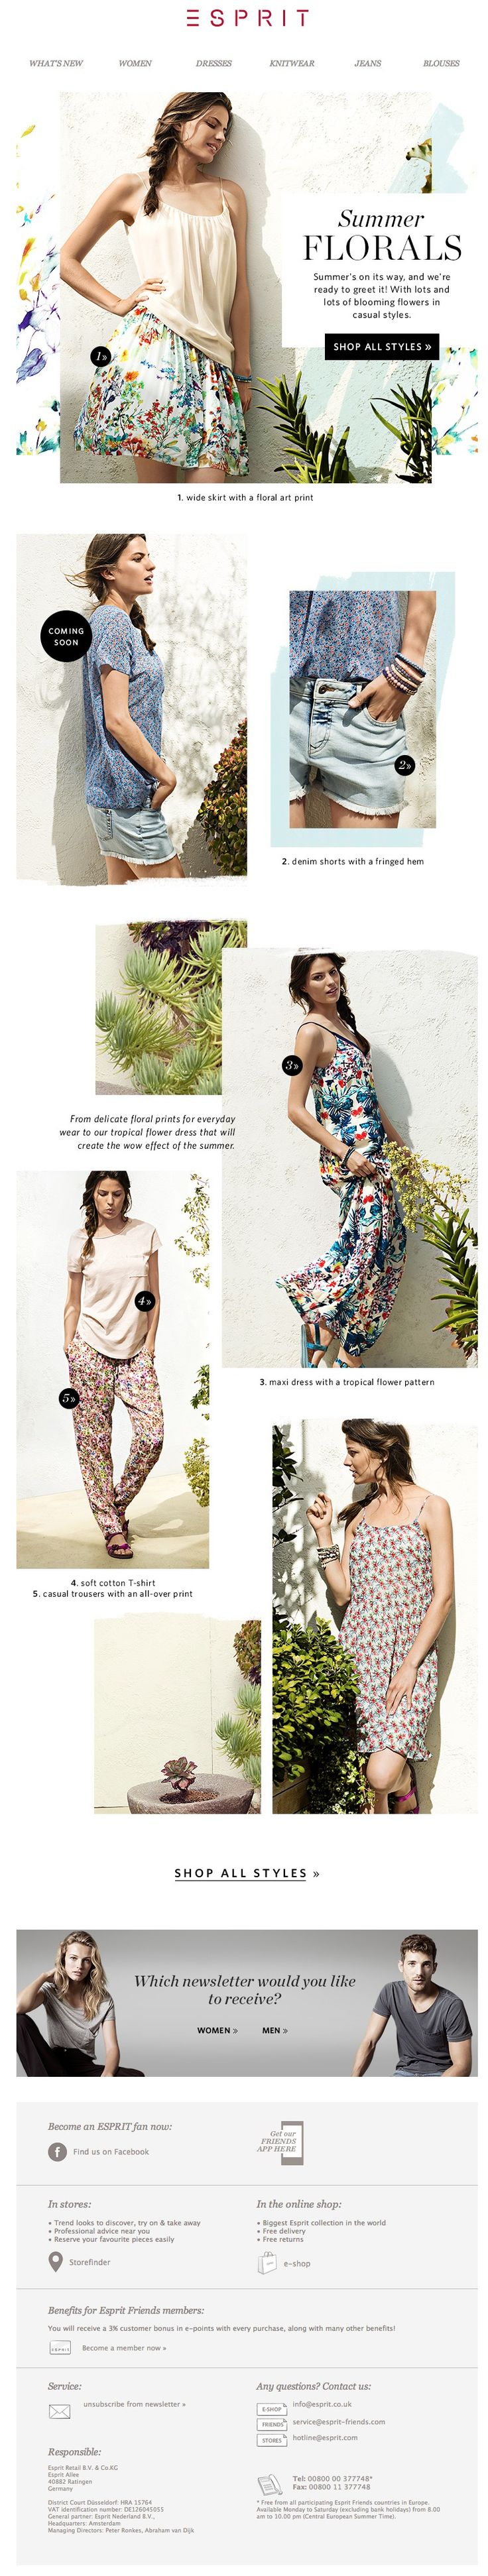 #newsletter Esprit 06.2014 Ready for summer?